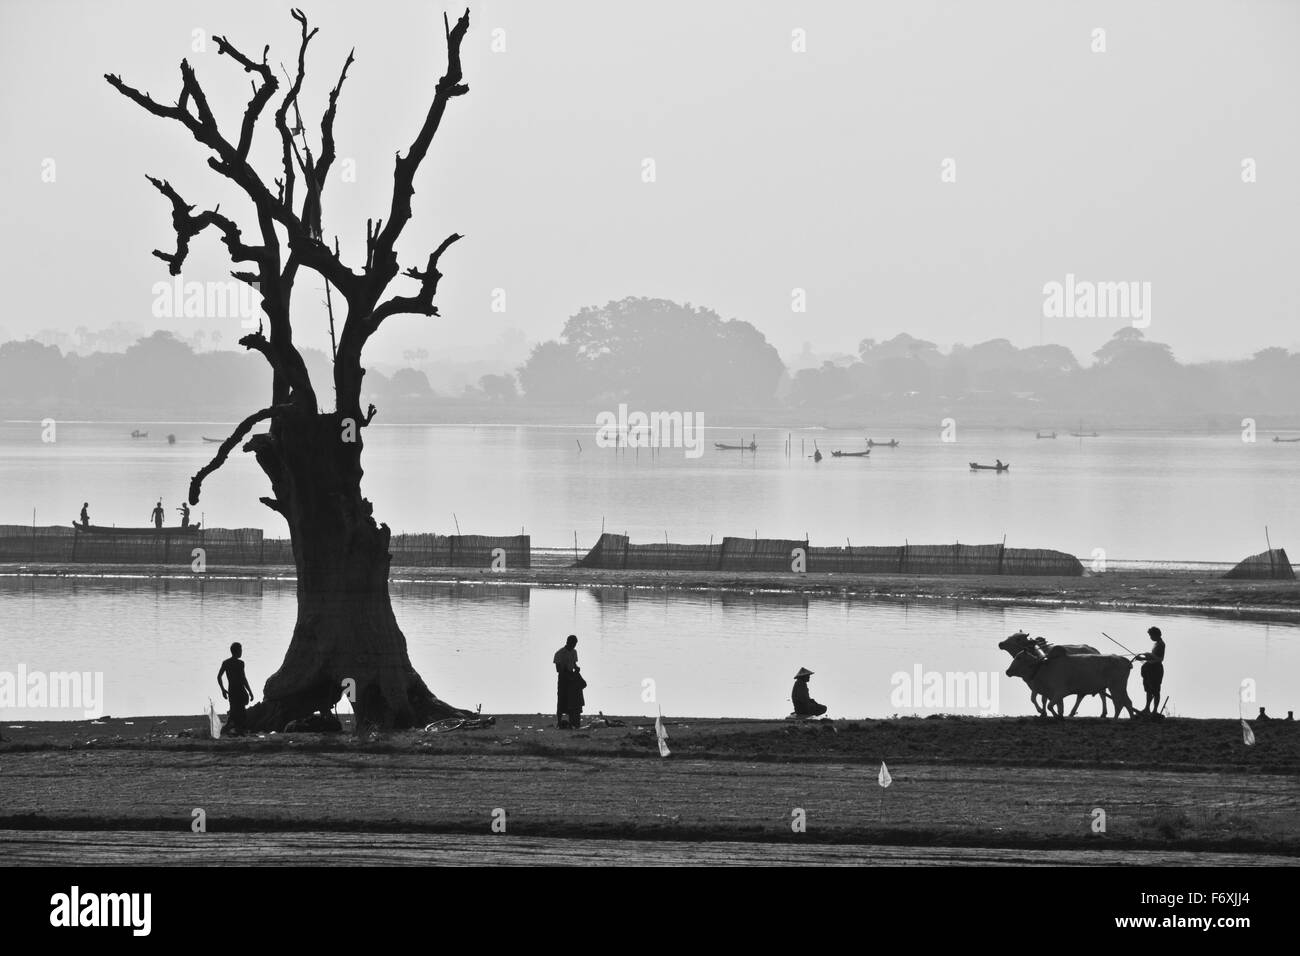 Landscape of Amarapura, Myanmar, Across the Irrawaddy River - Stock Image